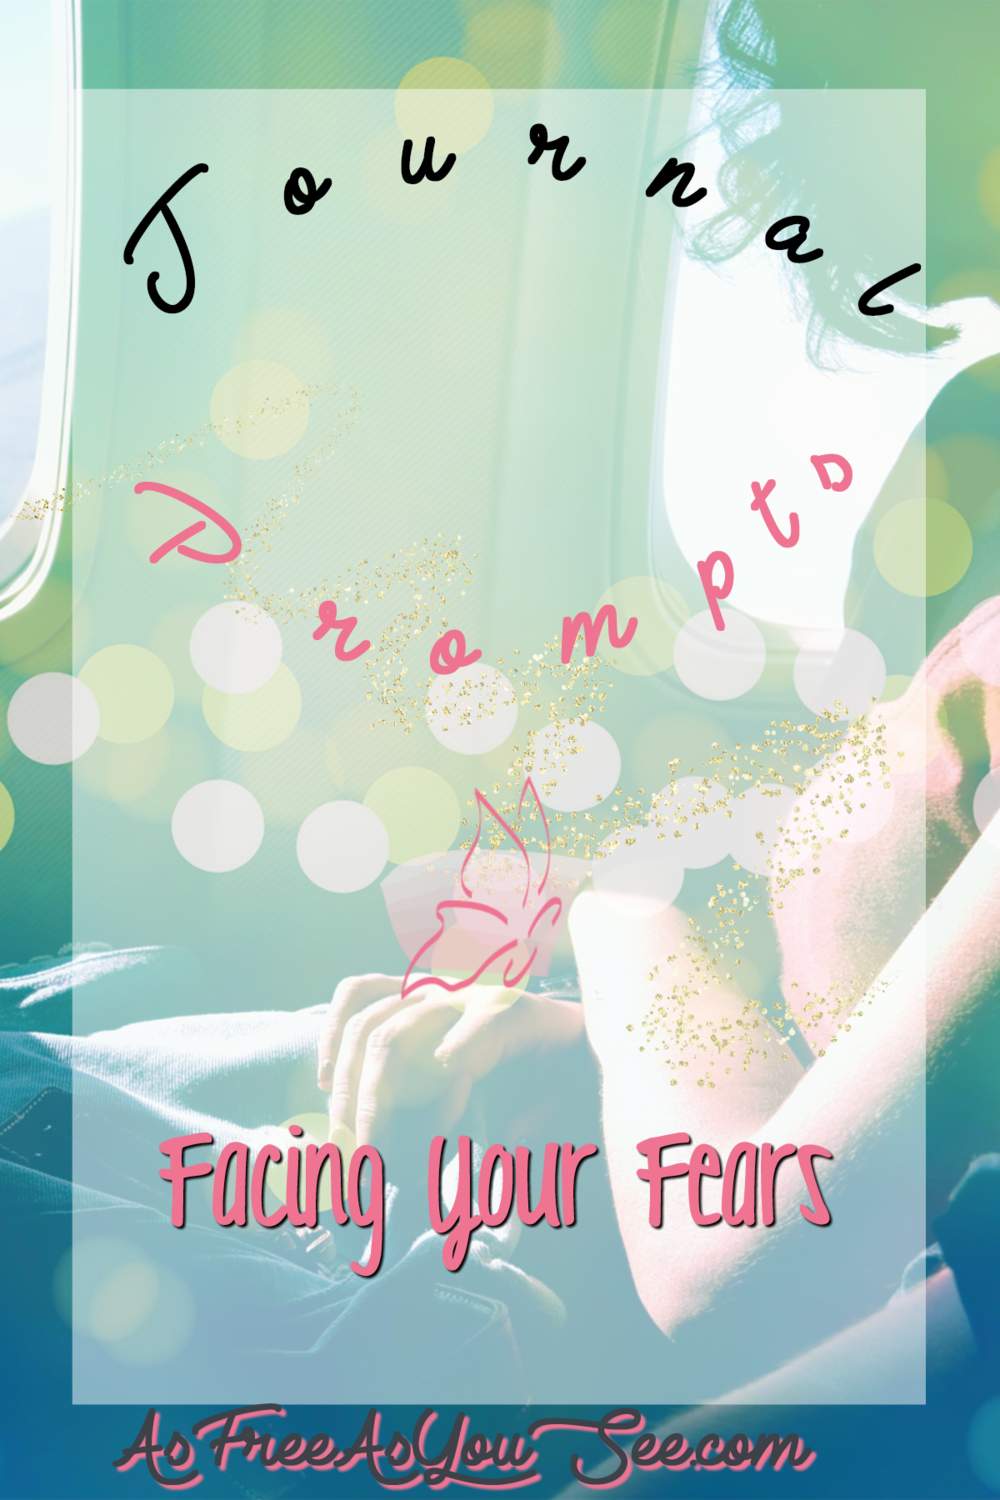 Journal Prompts: Facing Your Fears